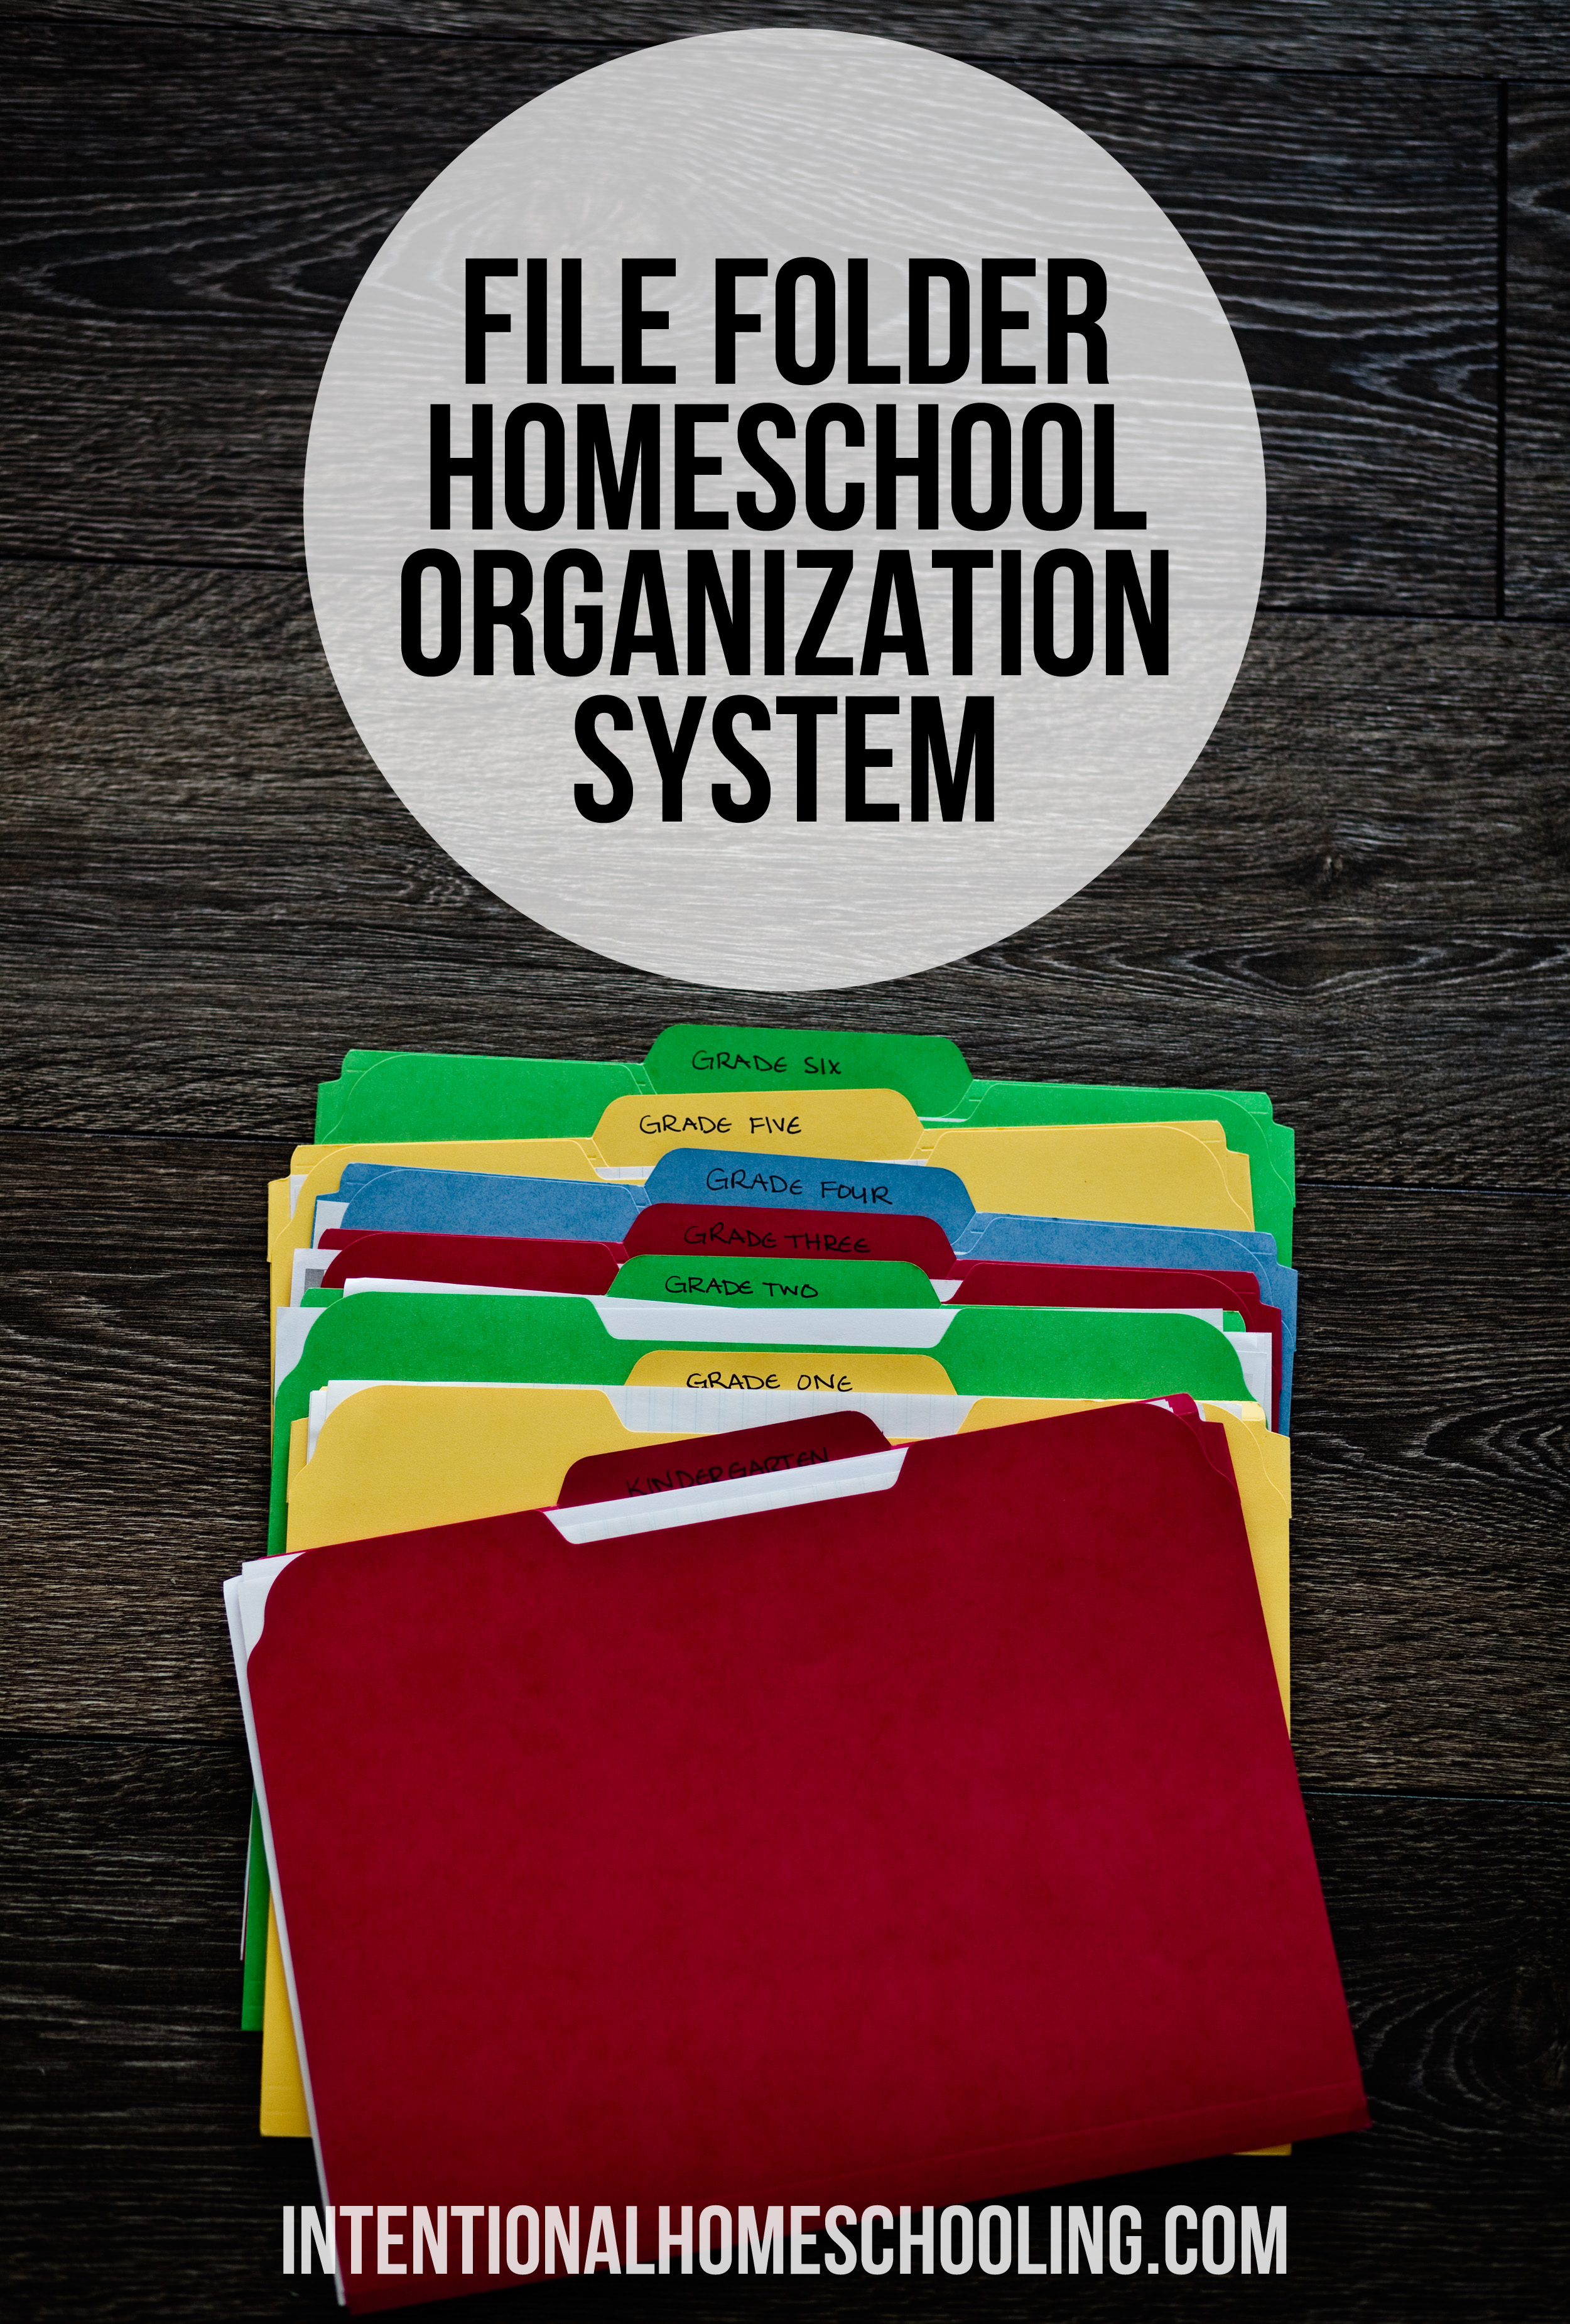 A simple file folder system for storing homeschool ideas for future grades.